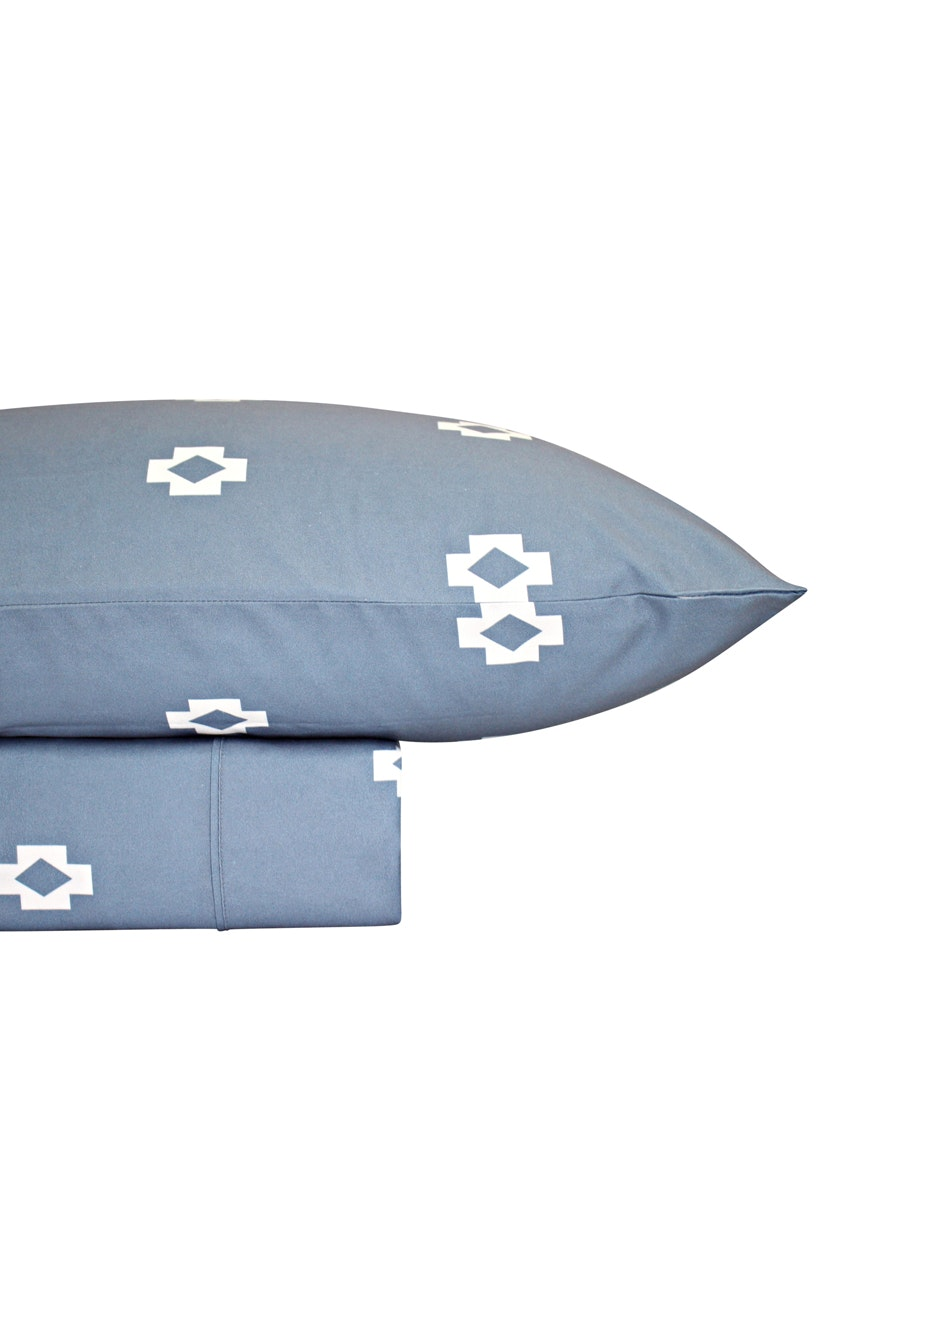 Thermal Flannel Sheet Sets - Tribal Design - Ice - King Bed